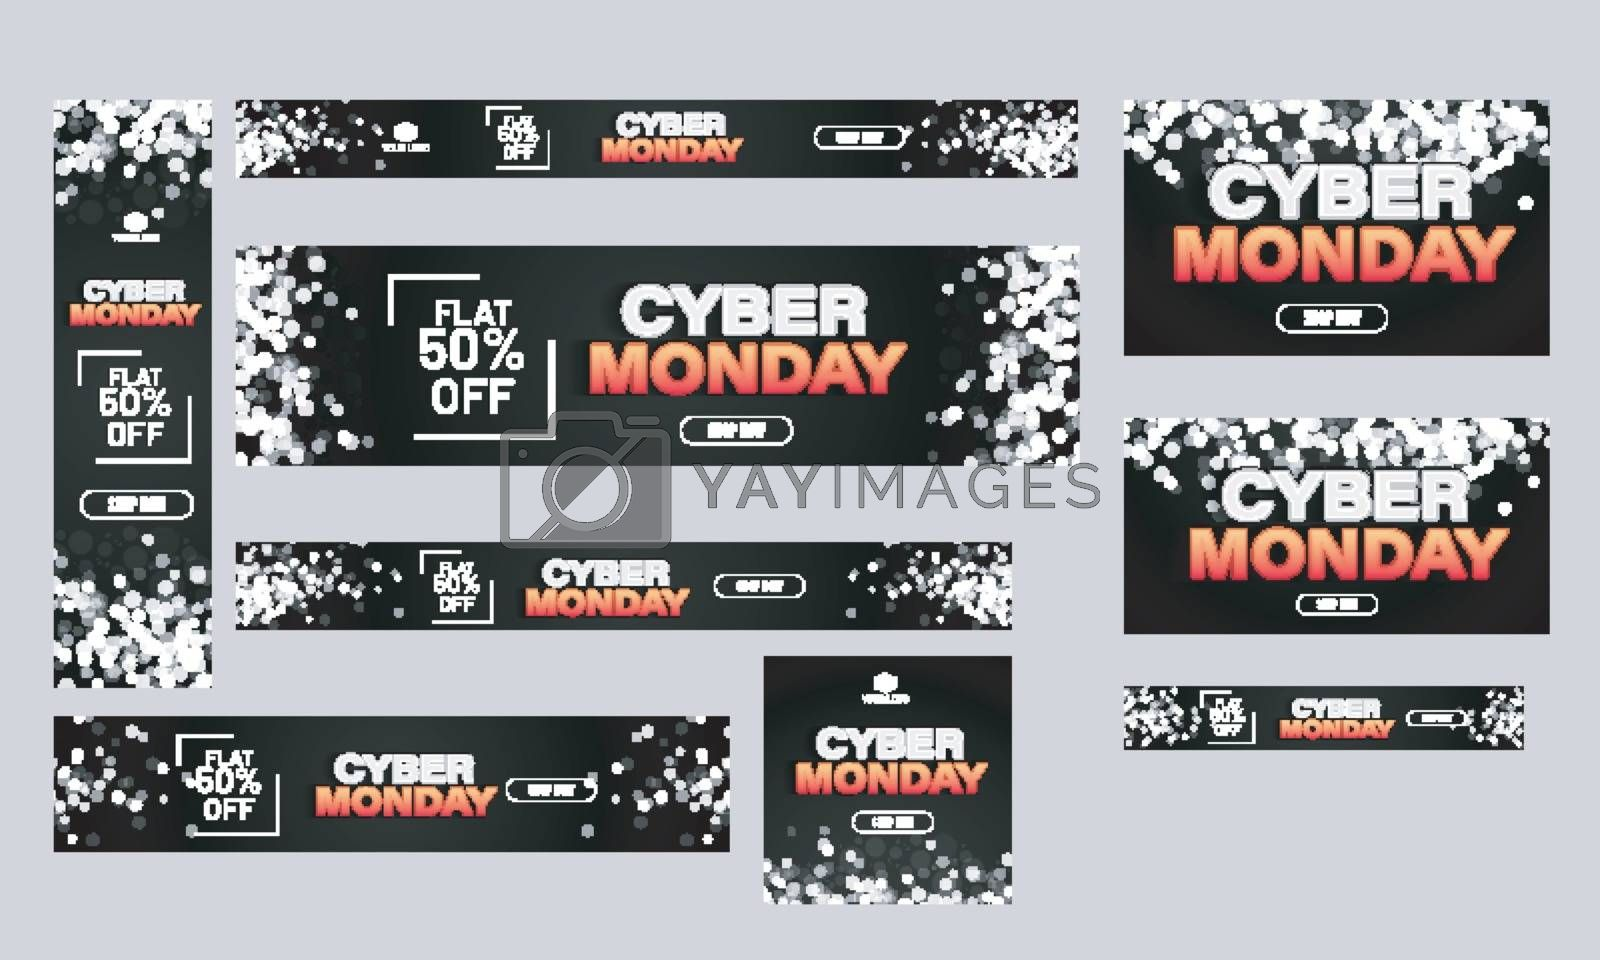 Set of Cyber Monday sale poster, banner and template design with flat 50% discount offer.